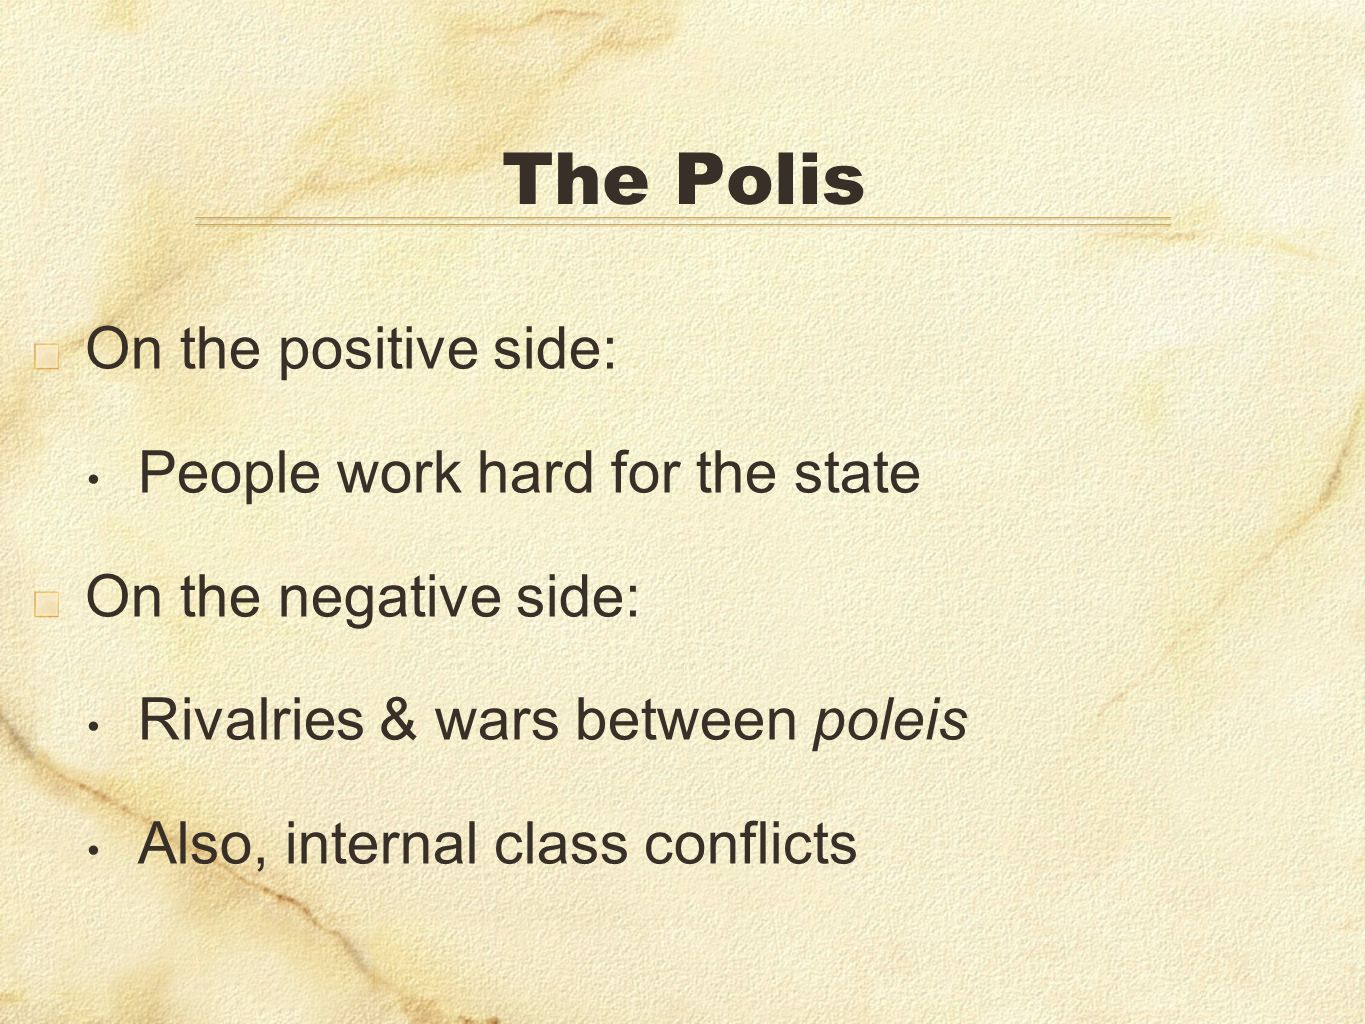 The Polis On the positive side: People work hard for the state On the negative side: Rivalries & wars between poleis Also, internal class conflicts